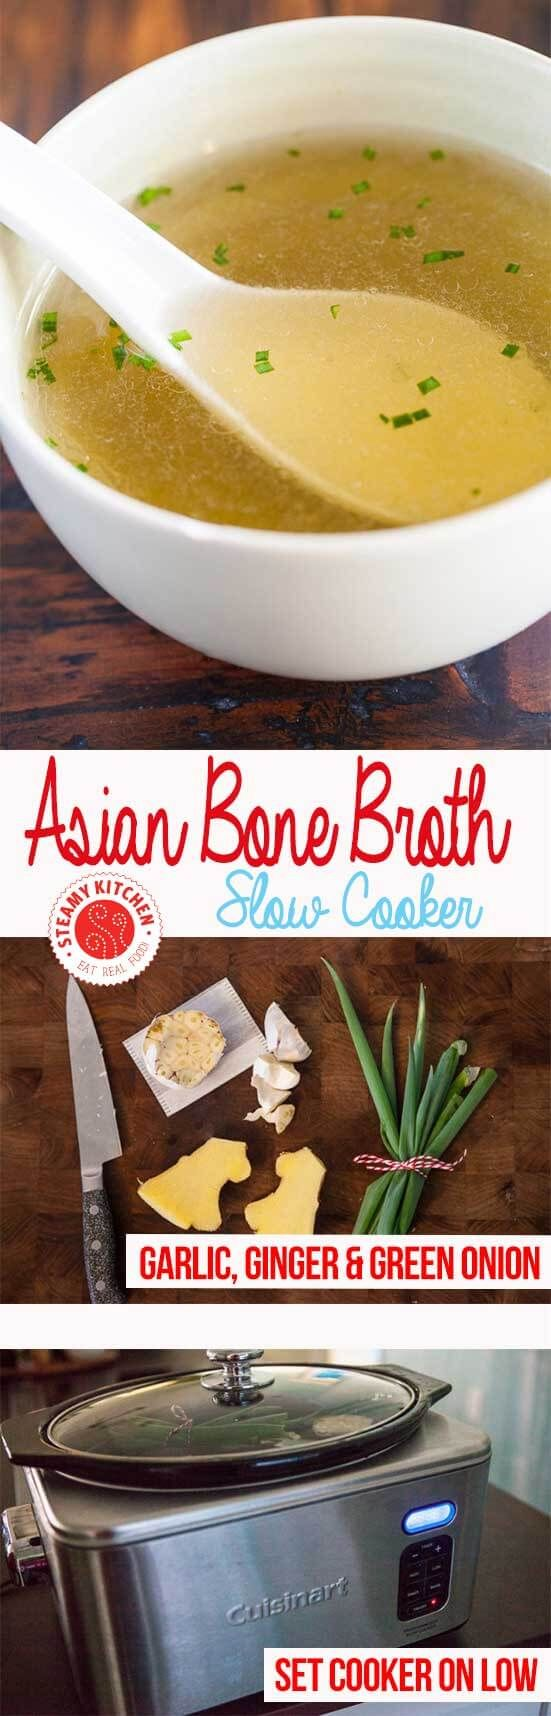 Slow Cooker Bone Broth Recipe, Asian style! Enjoy a hot bowl of nutritious and natural bone broth, using Chinese, Japanese and Vietnamese flavors. ~ http://steamykitchen.com